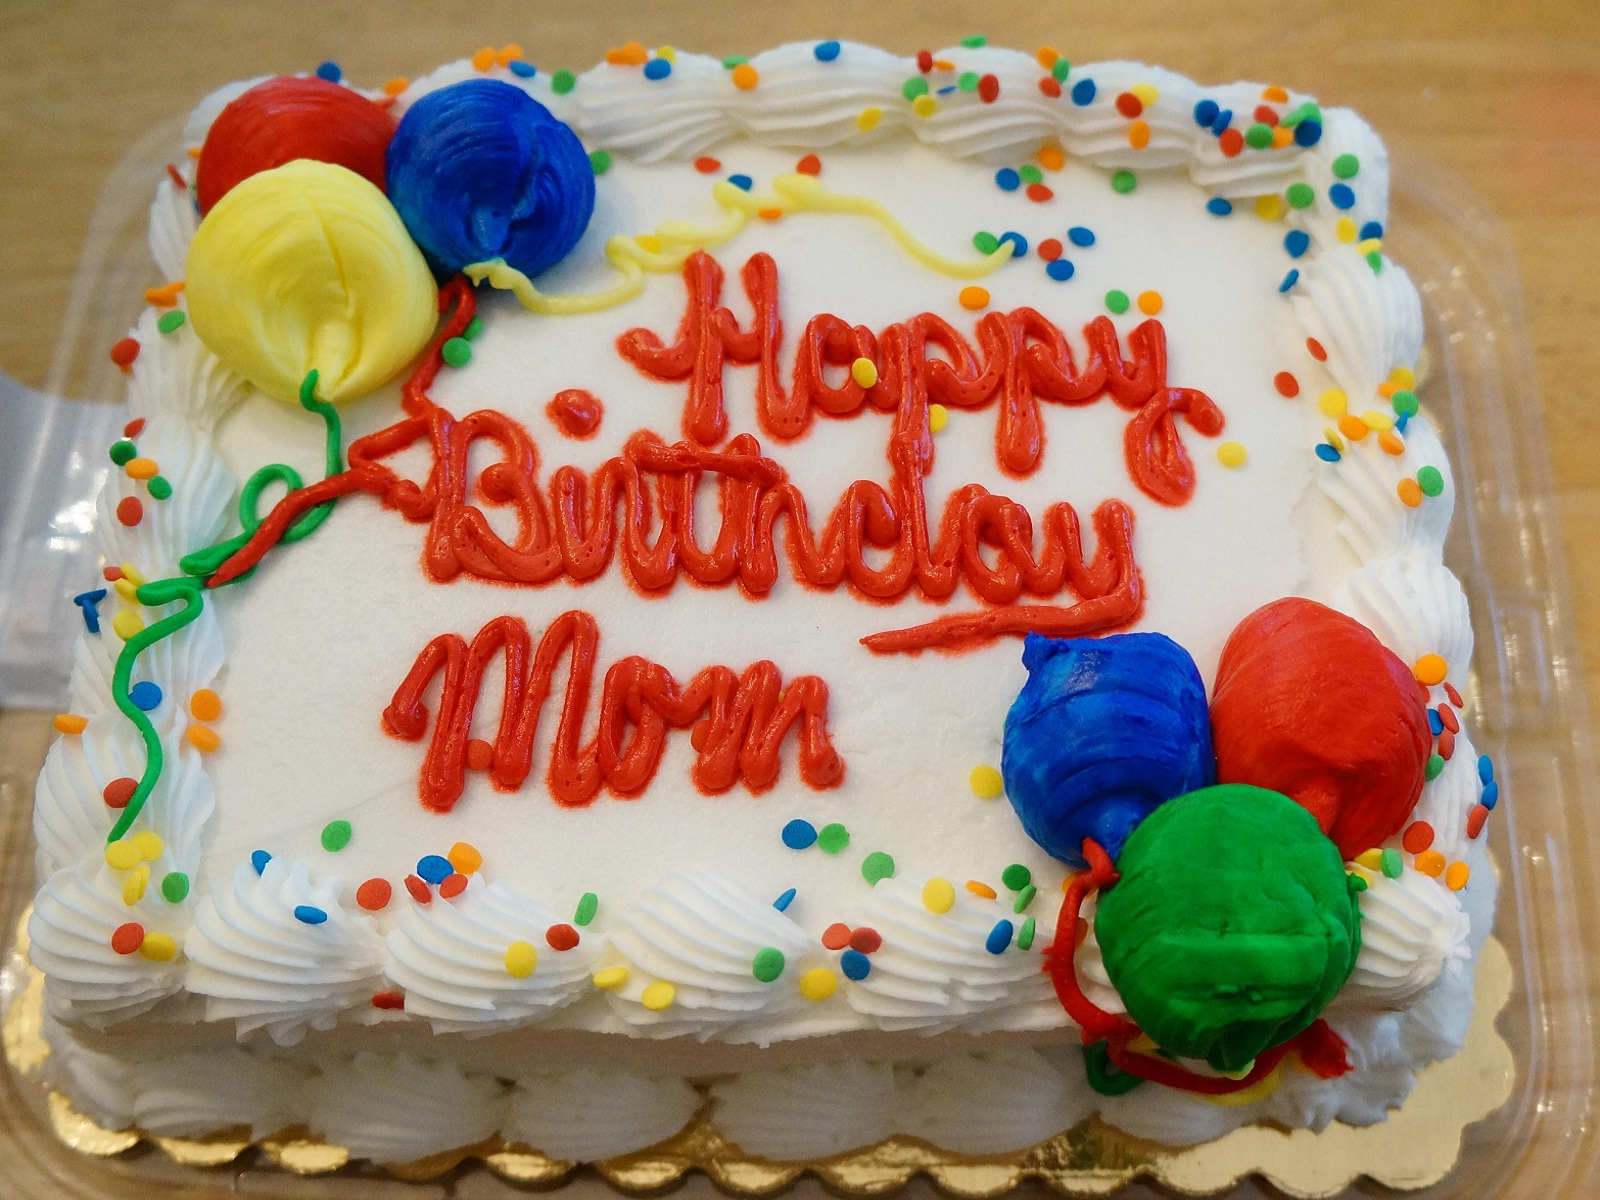 Happy birthday mom HD wallpapers 1600x1200